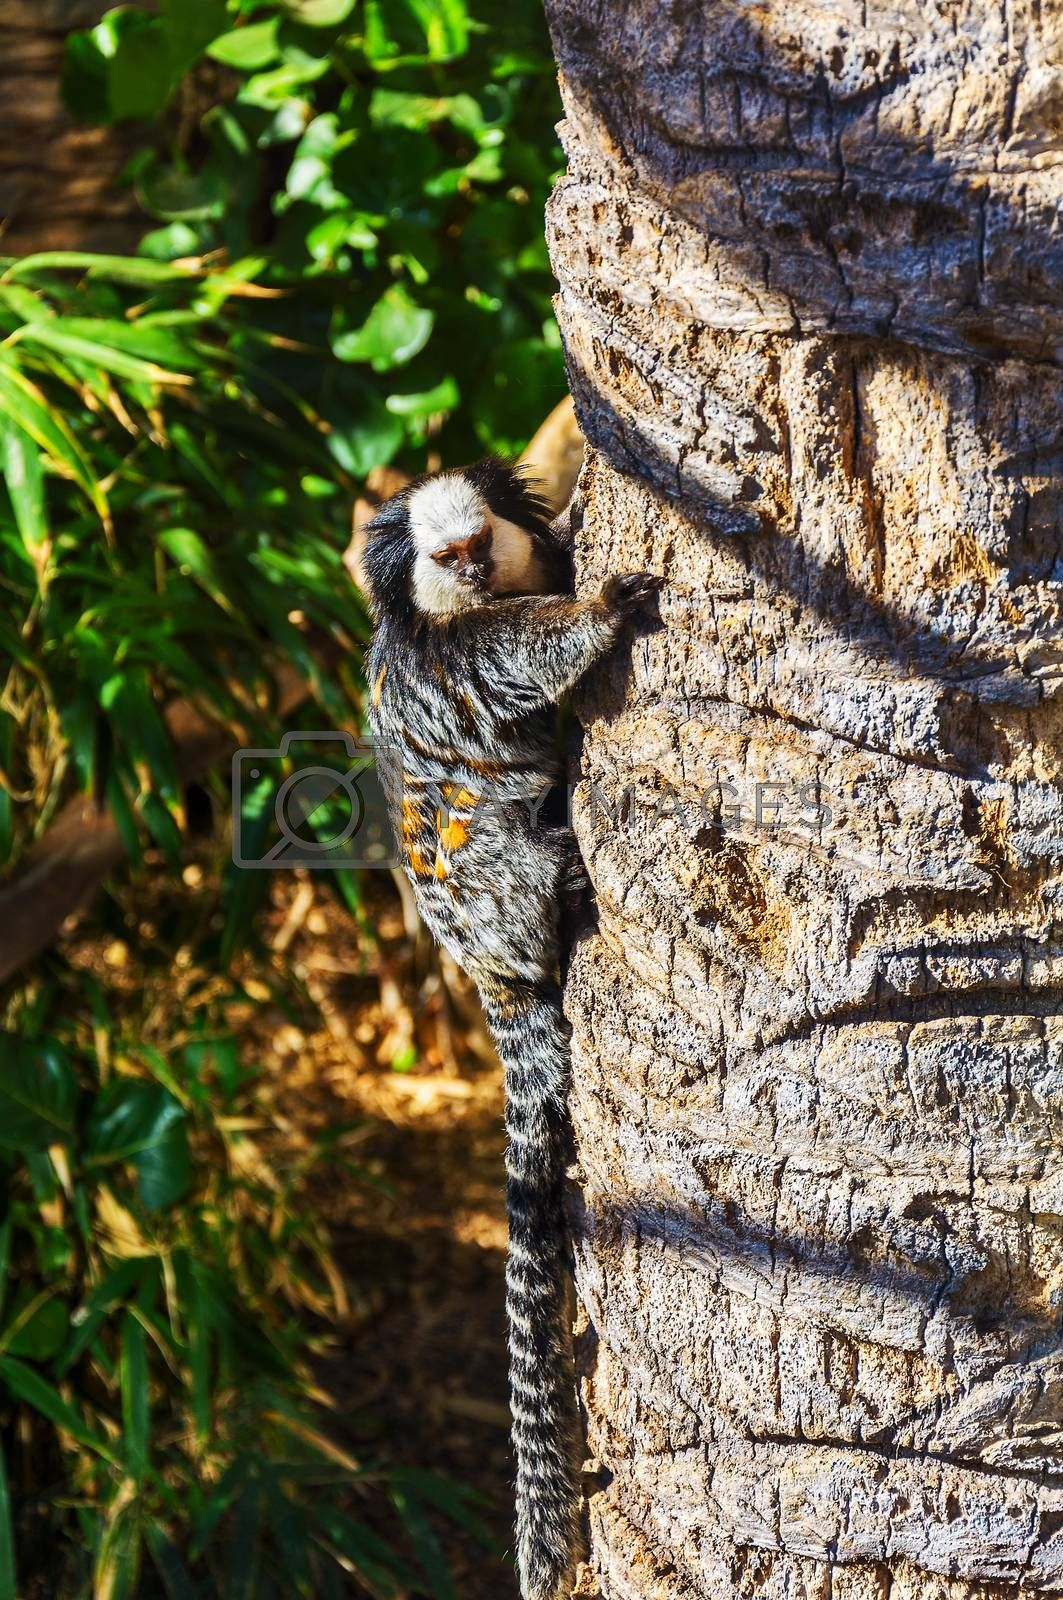 Lemur with a striped tail climbs the trunk of palm trees by Grommik